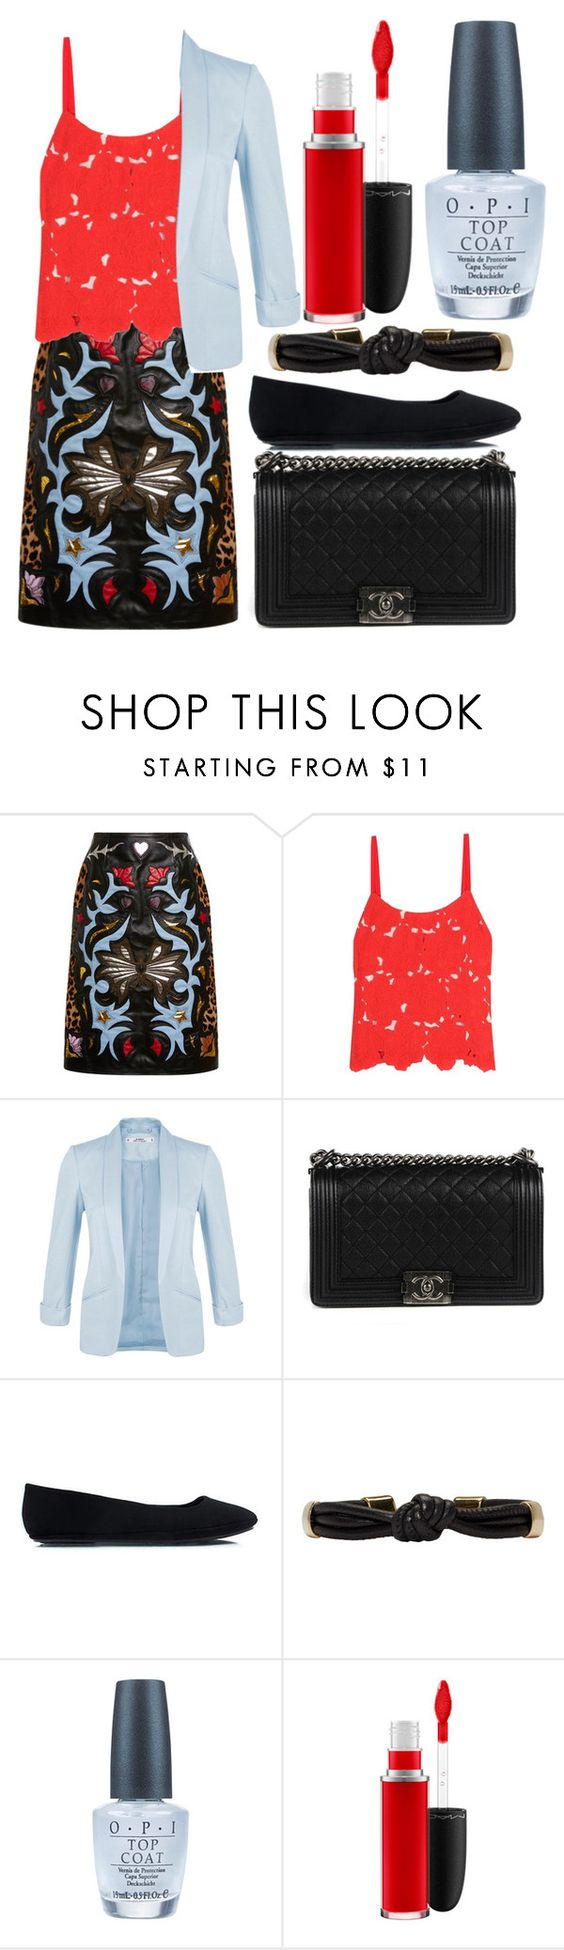 """""""If You Can Keep A Secret"""" by egordon2 ❤ liked on Polyvore featuring Mary Katrantzou, Alice + Olivia, Miss Selfridge, Chanel, Isabel Marant, OPI and MAC Cosmetics"""